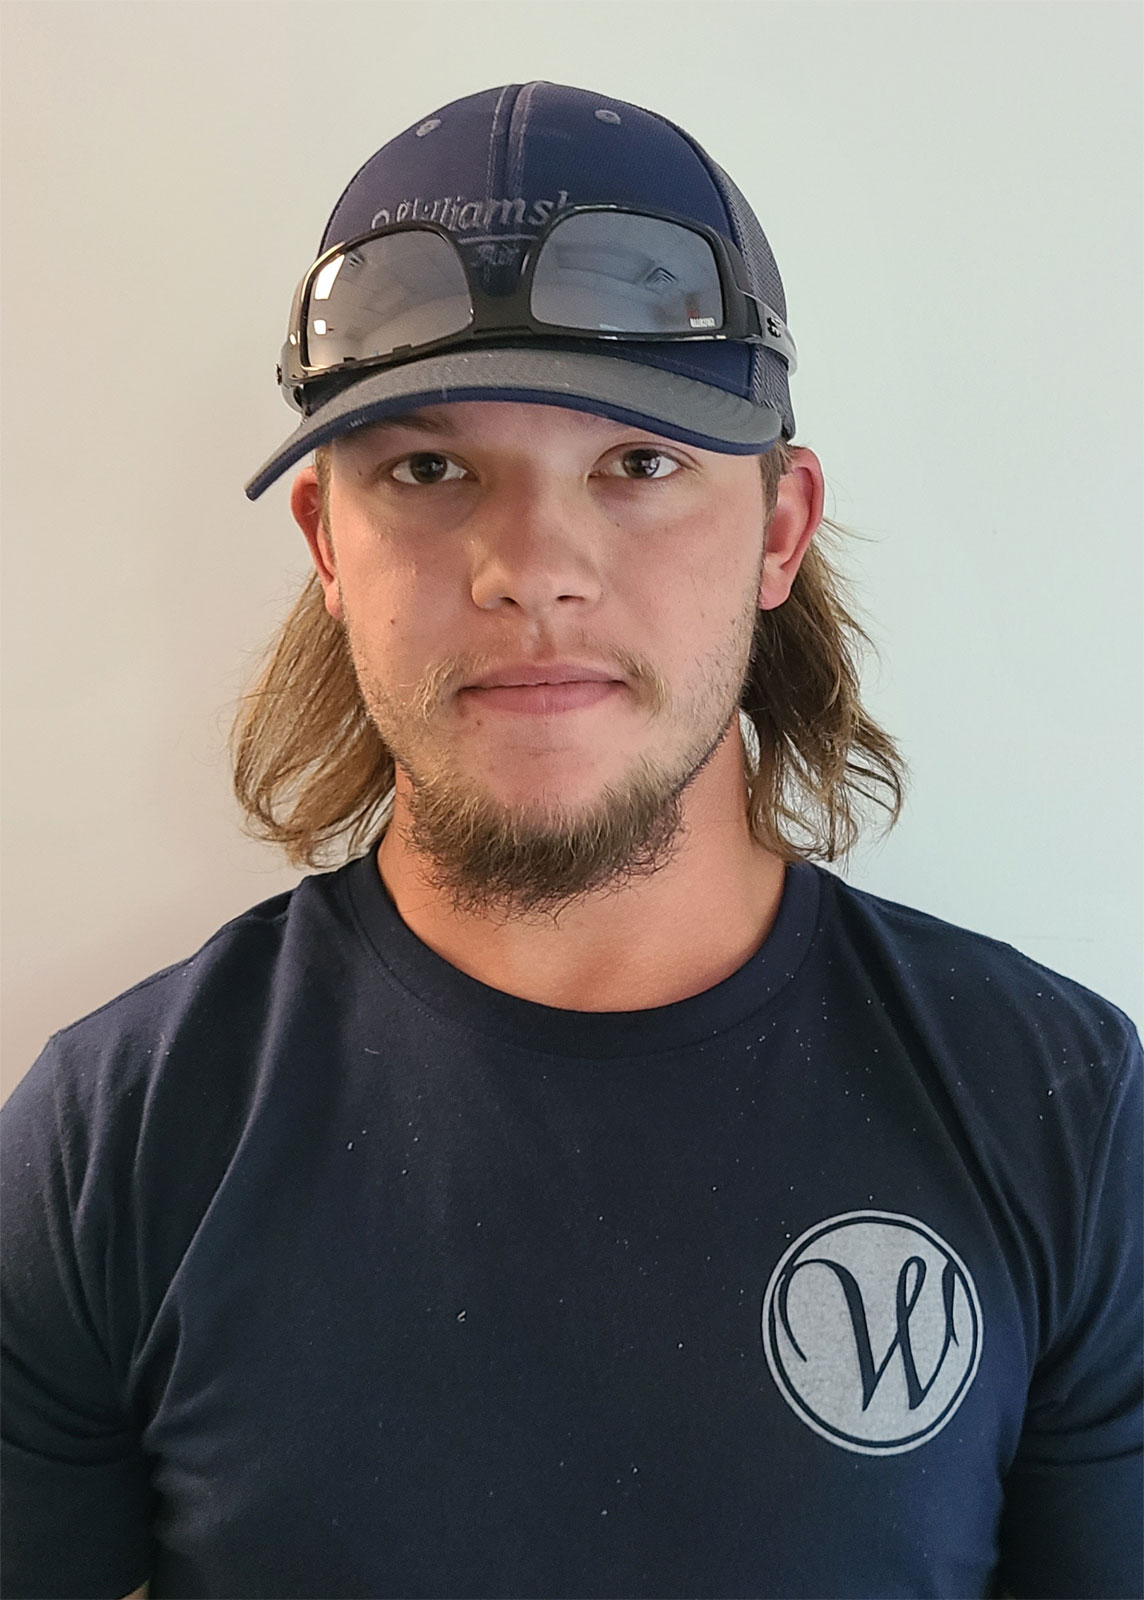 J. Bryce Henley is a team member of Williamsburg Heating & Air Conditioning Company